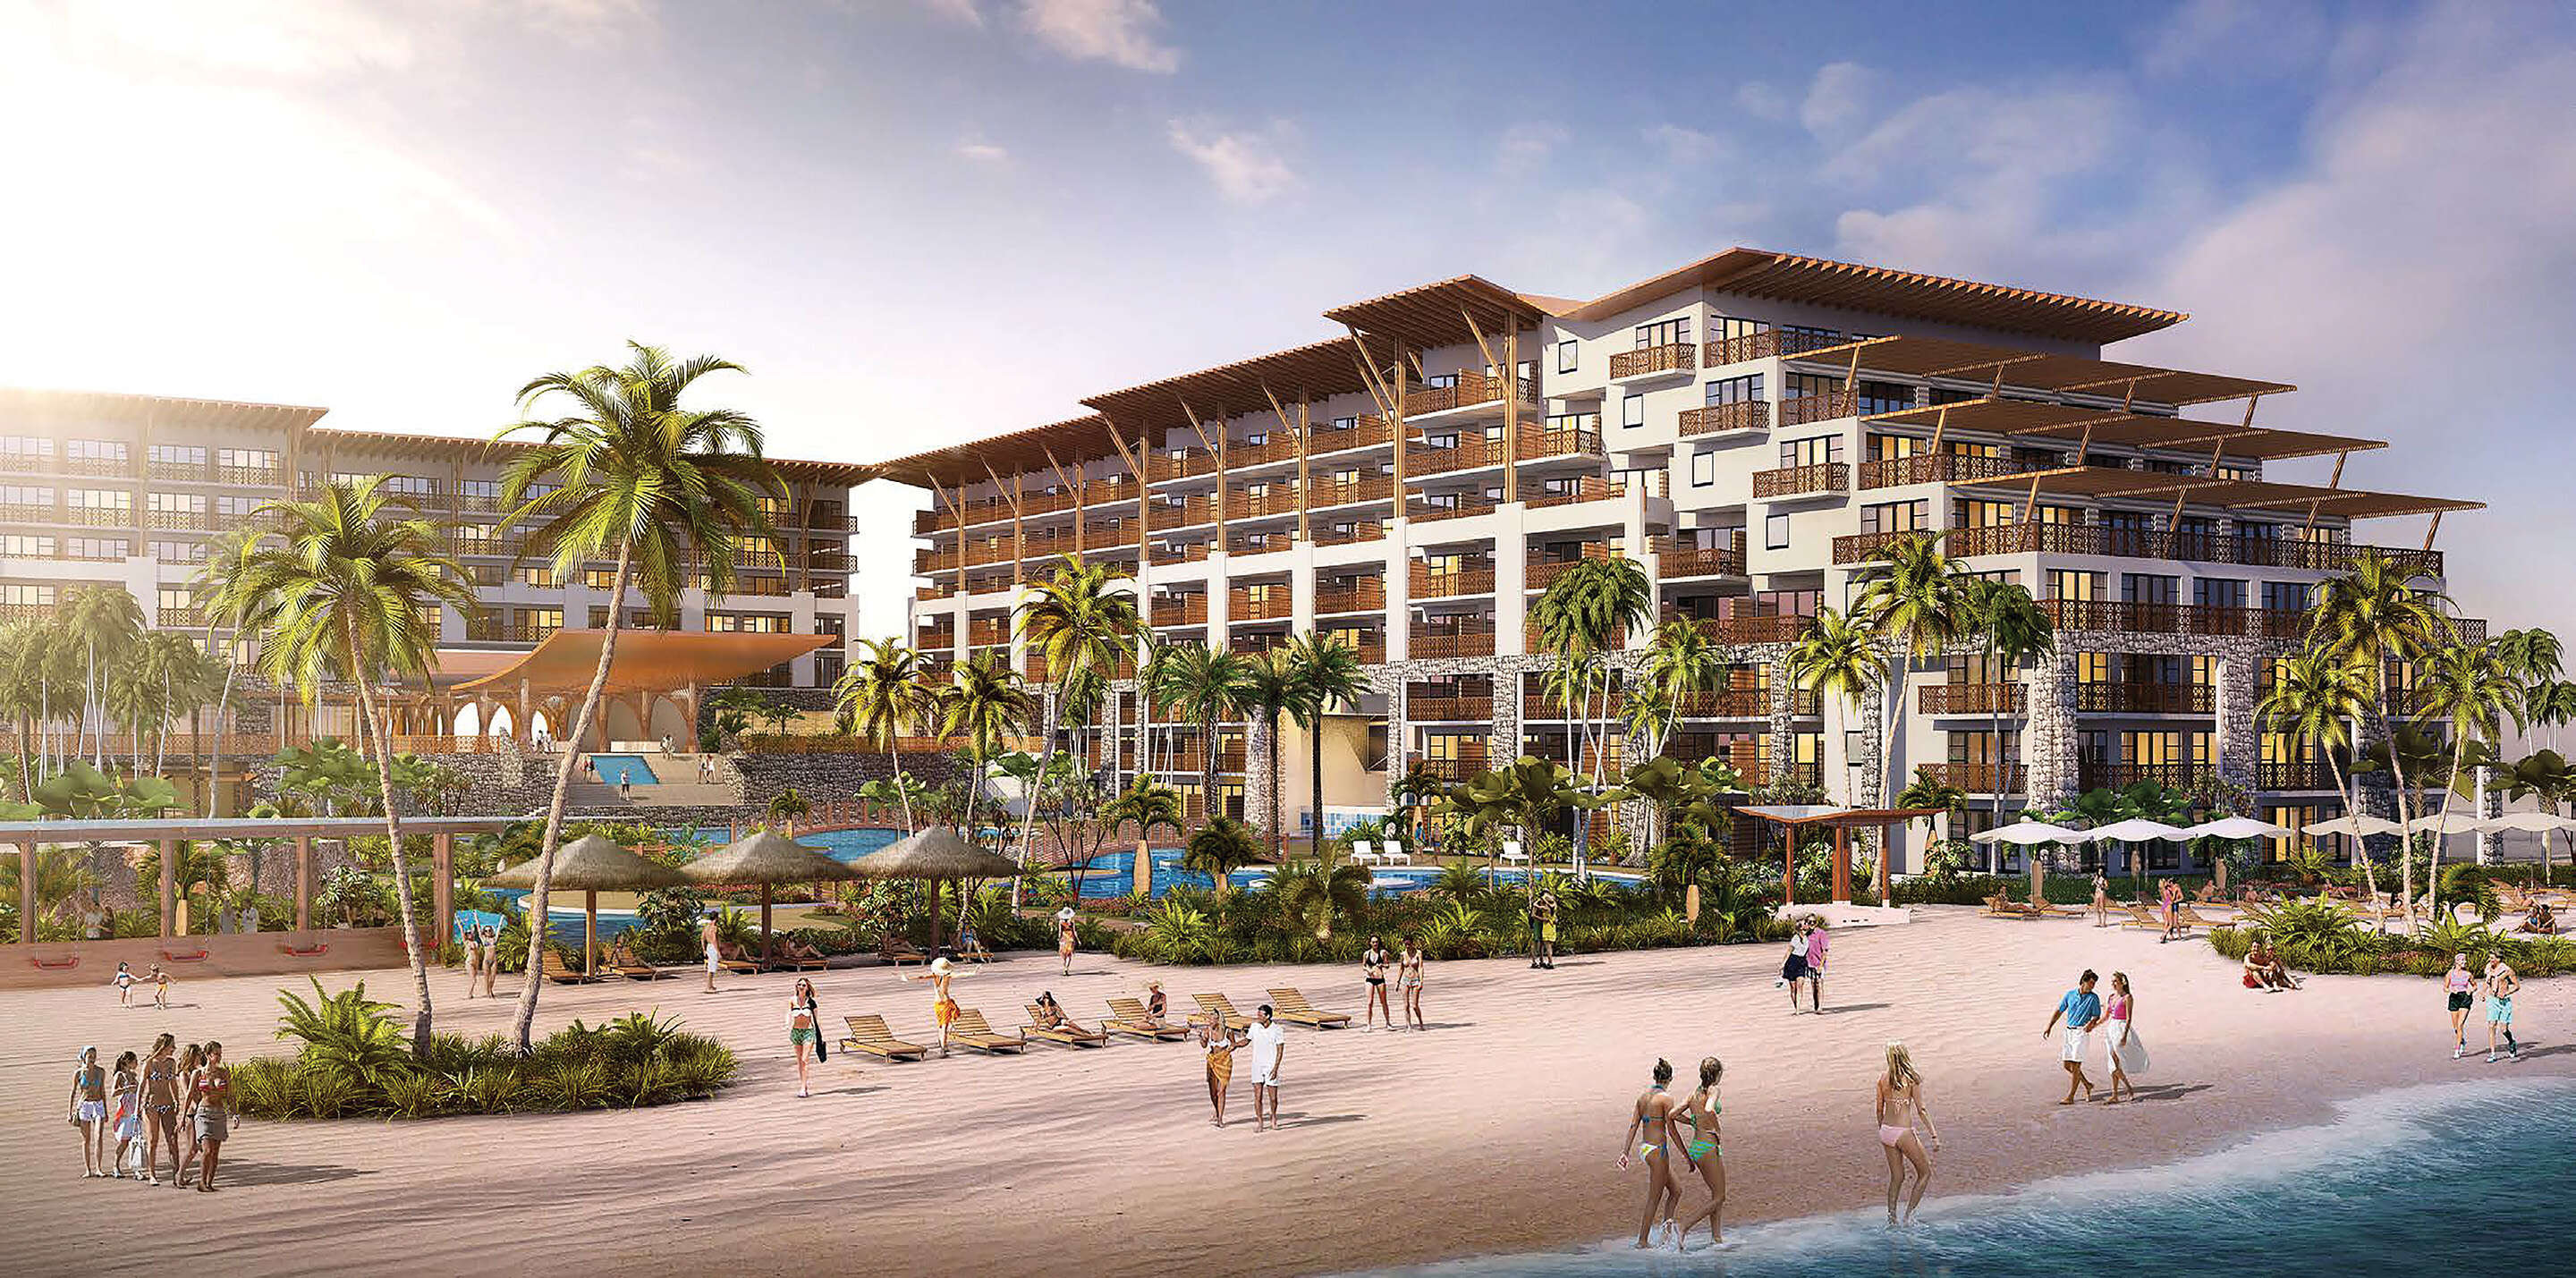 2020 Now Natura Riviera Cancun: NS & PE March Break - Hosted by Tara Turner